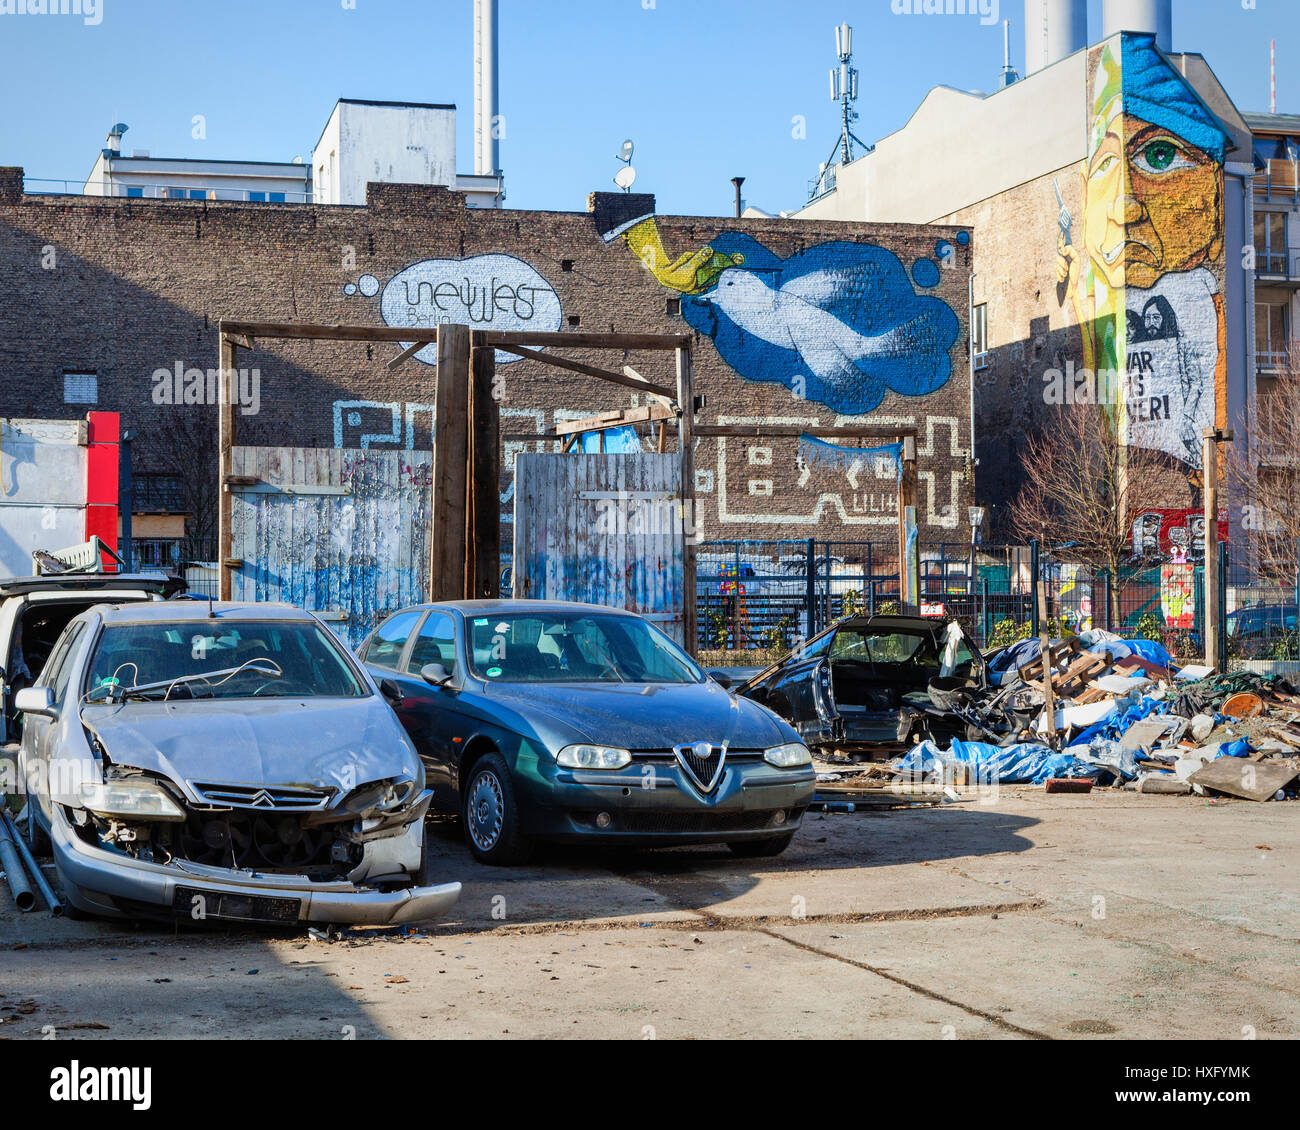 Berlin buildings with mural street art on firewalls of building, hand and dove,man holding gun.Junkyard with wrecked - Stock Image